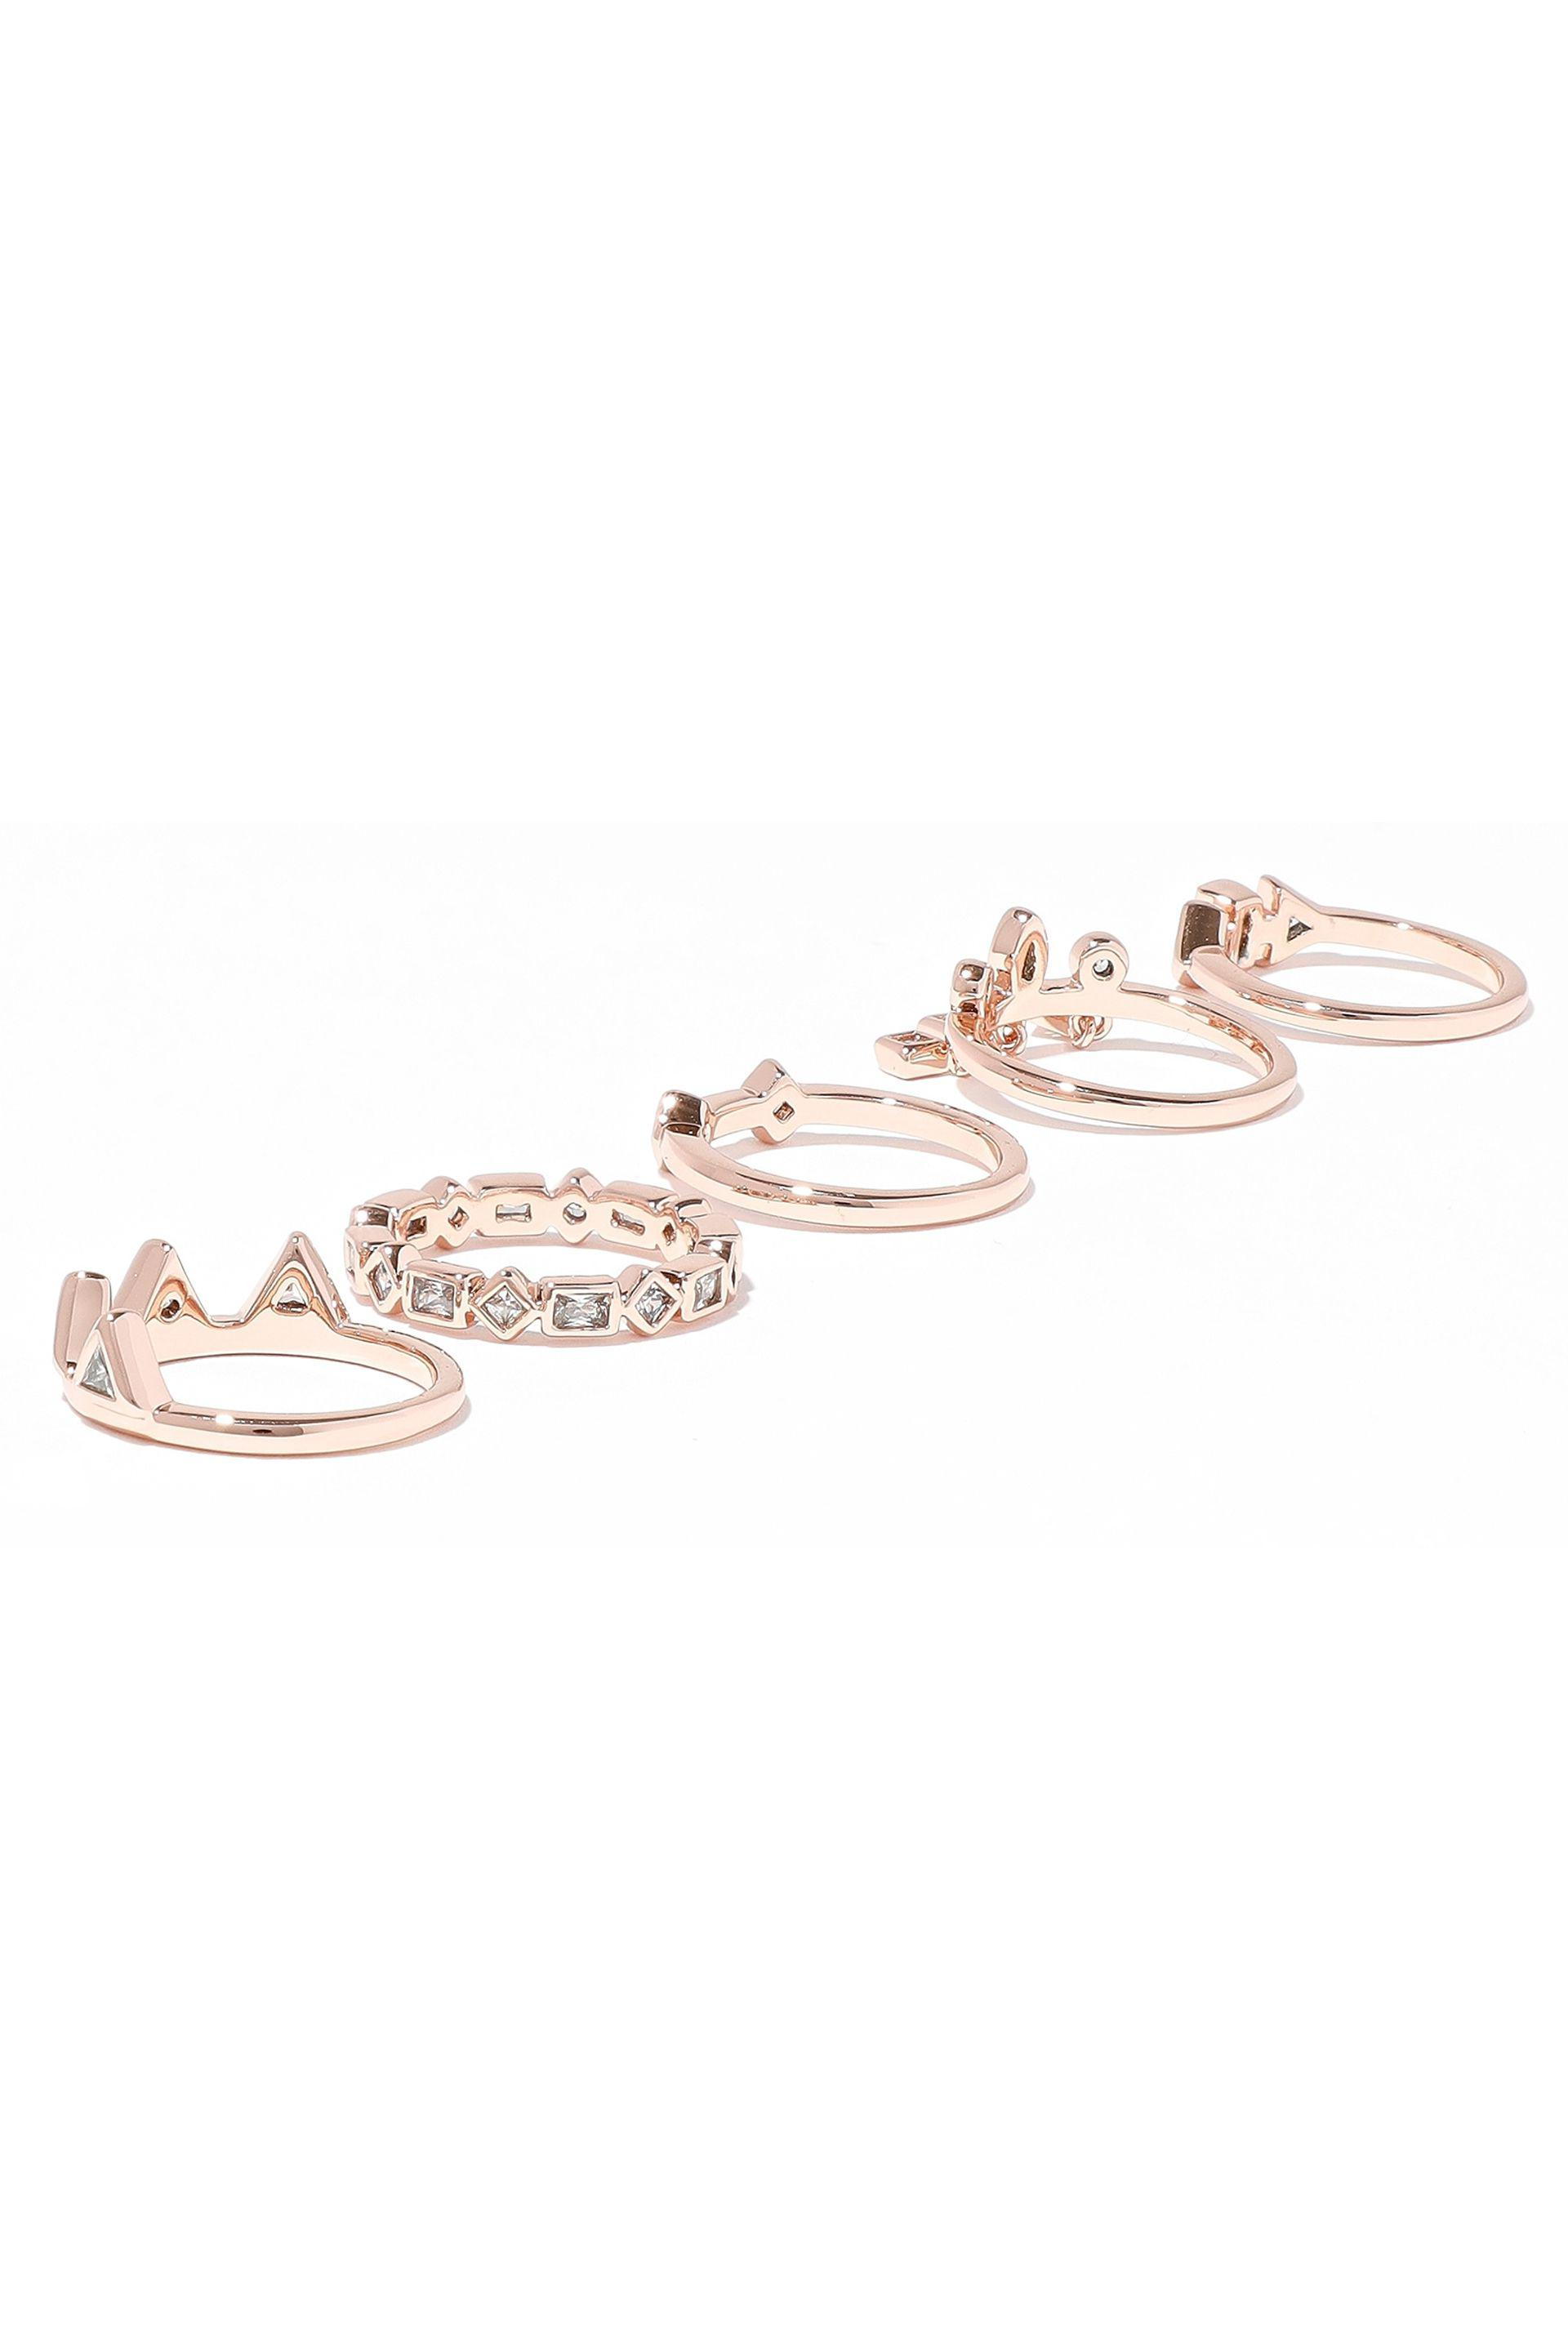 Luv Aj Woman Medley Set Of Five Rose Gold-tone Crystal Rings Rose Gold Size 5 Luv AJ